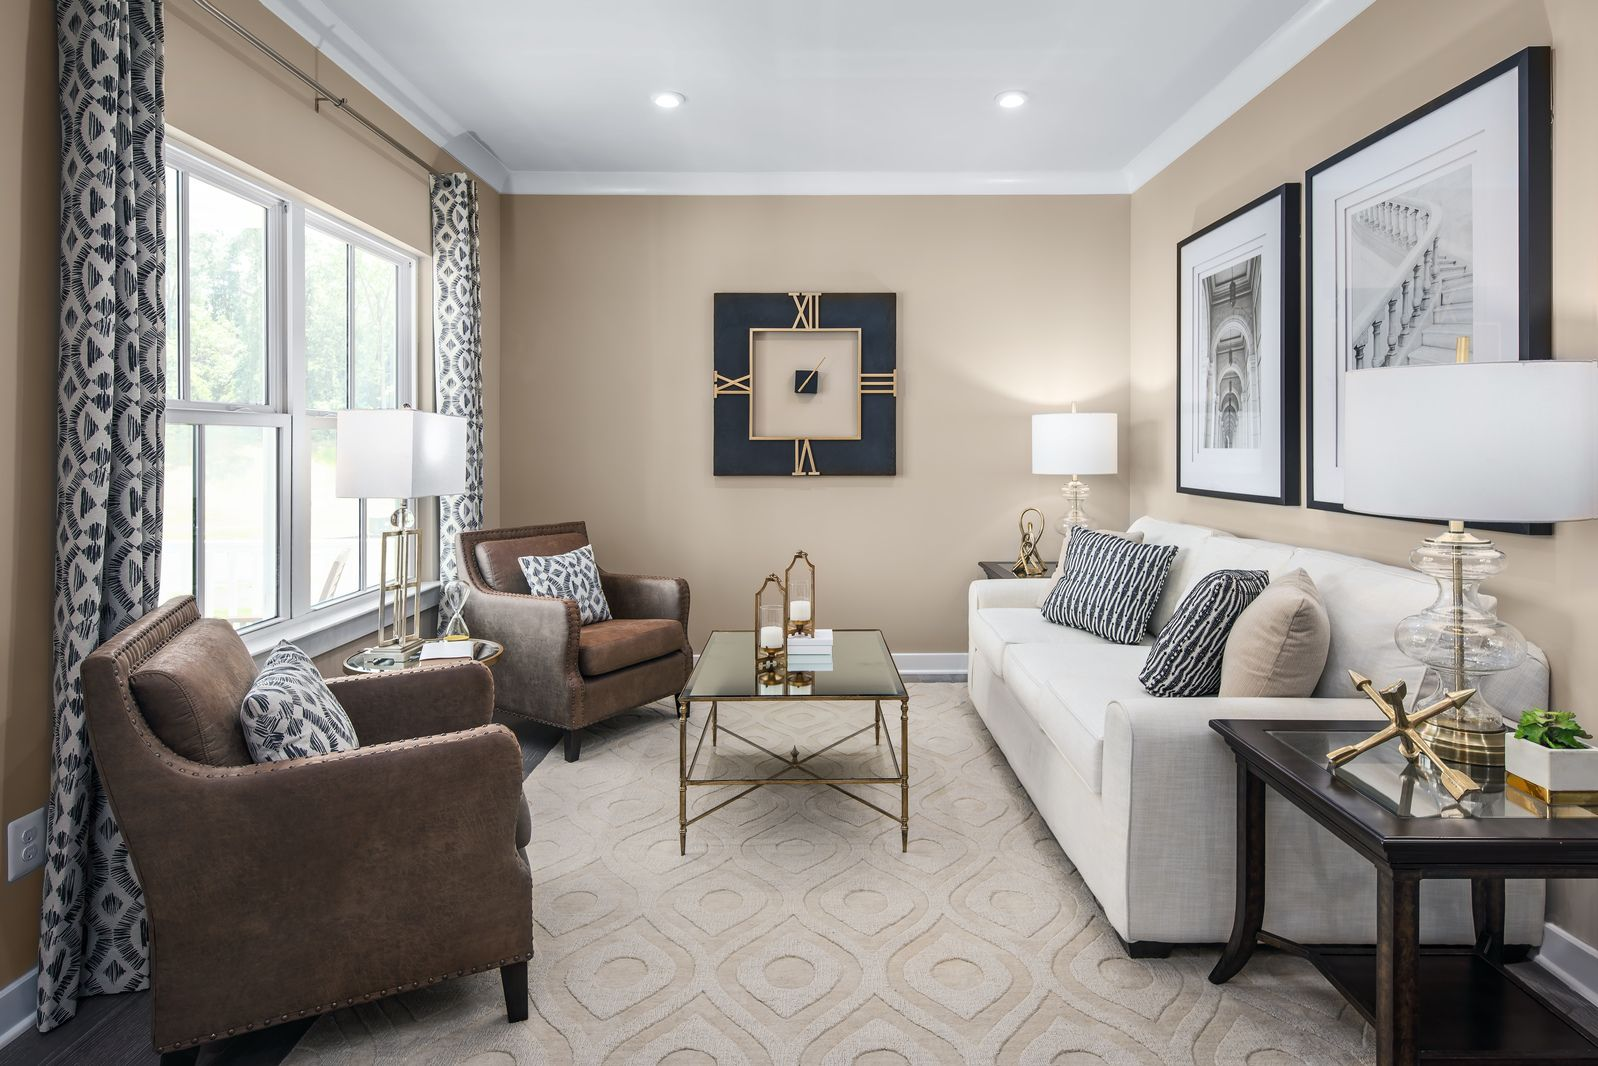 Living Area featured in the Hudson By Ryan Homes in Philadelphia, NJ